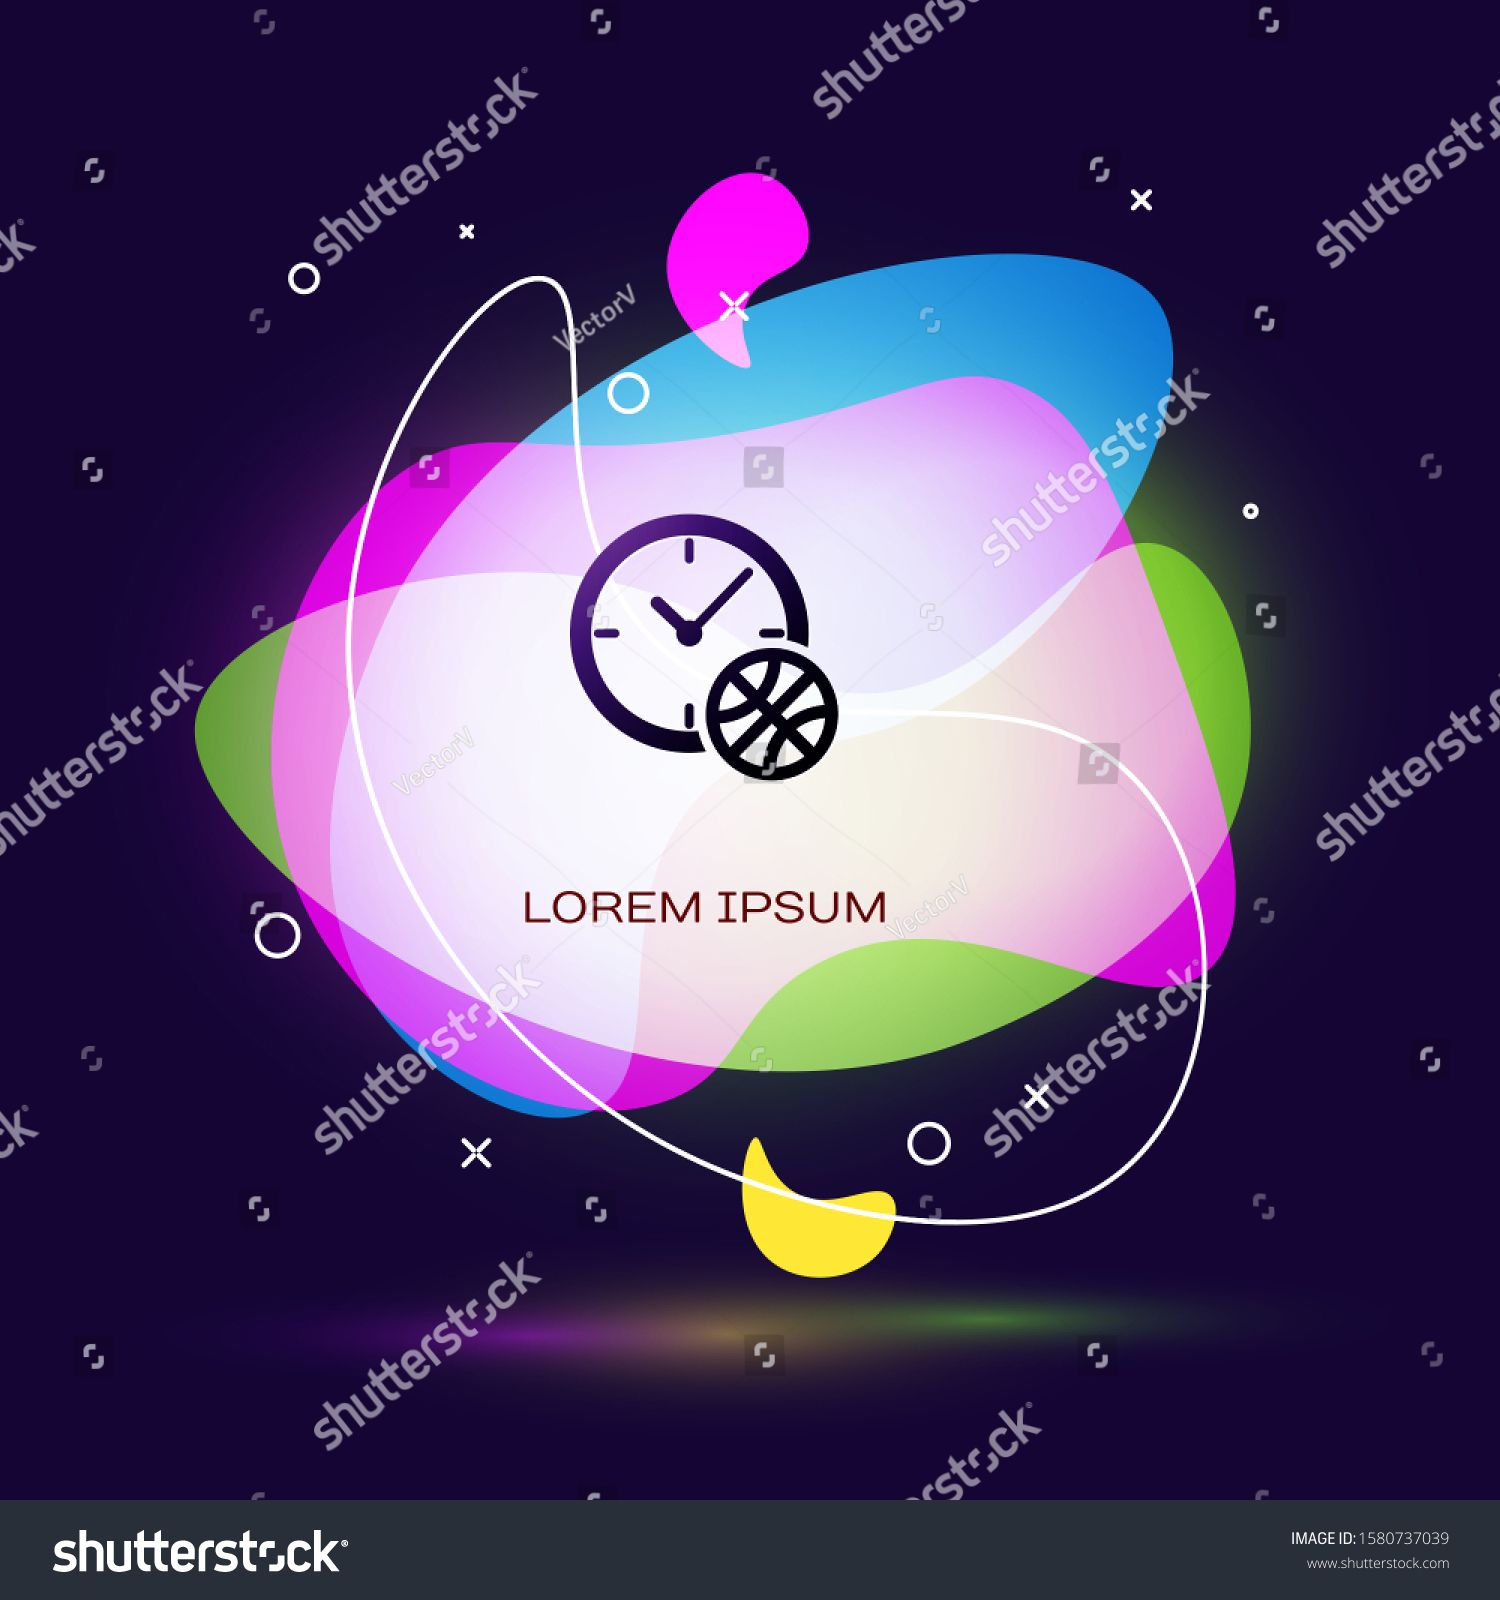 Black Clock with basketball ball inside icon isolated on